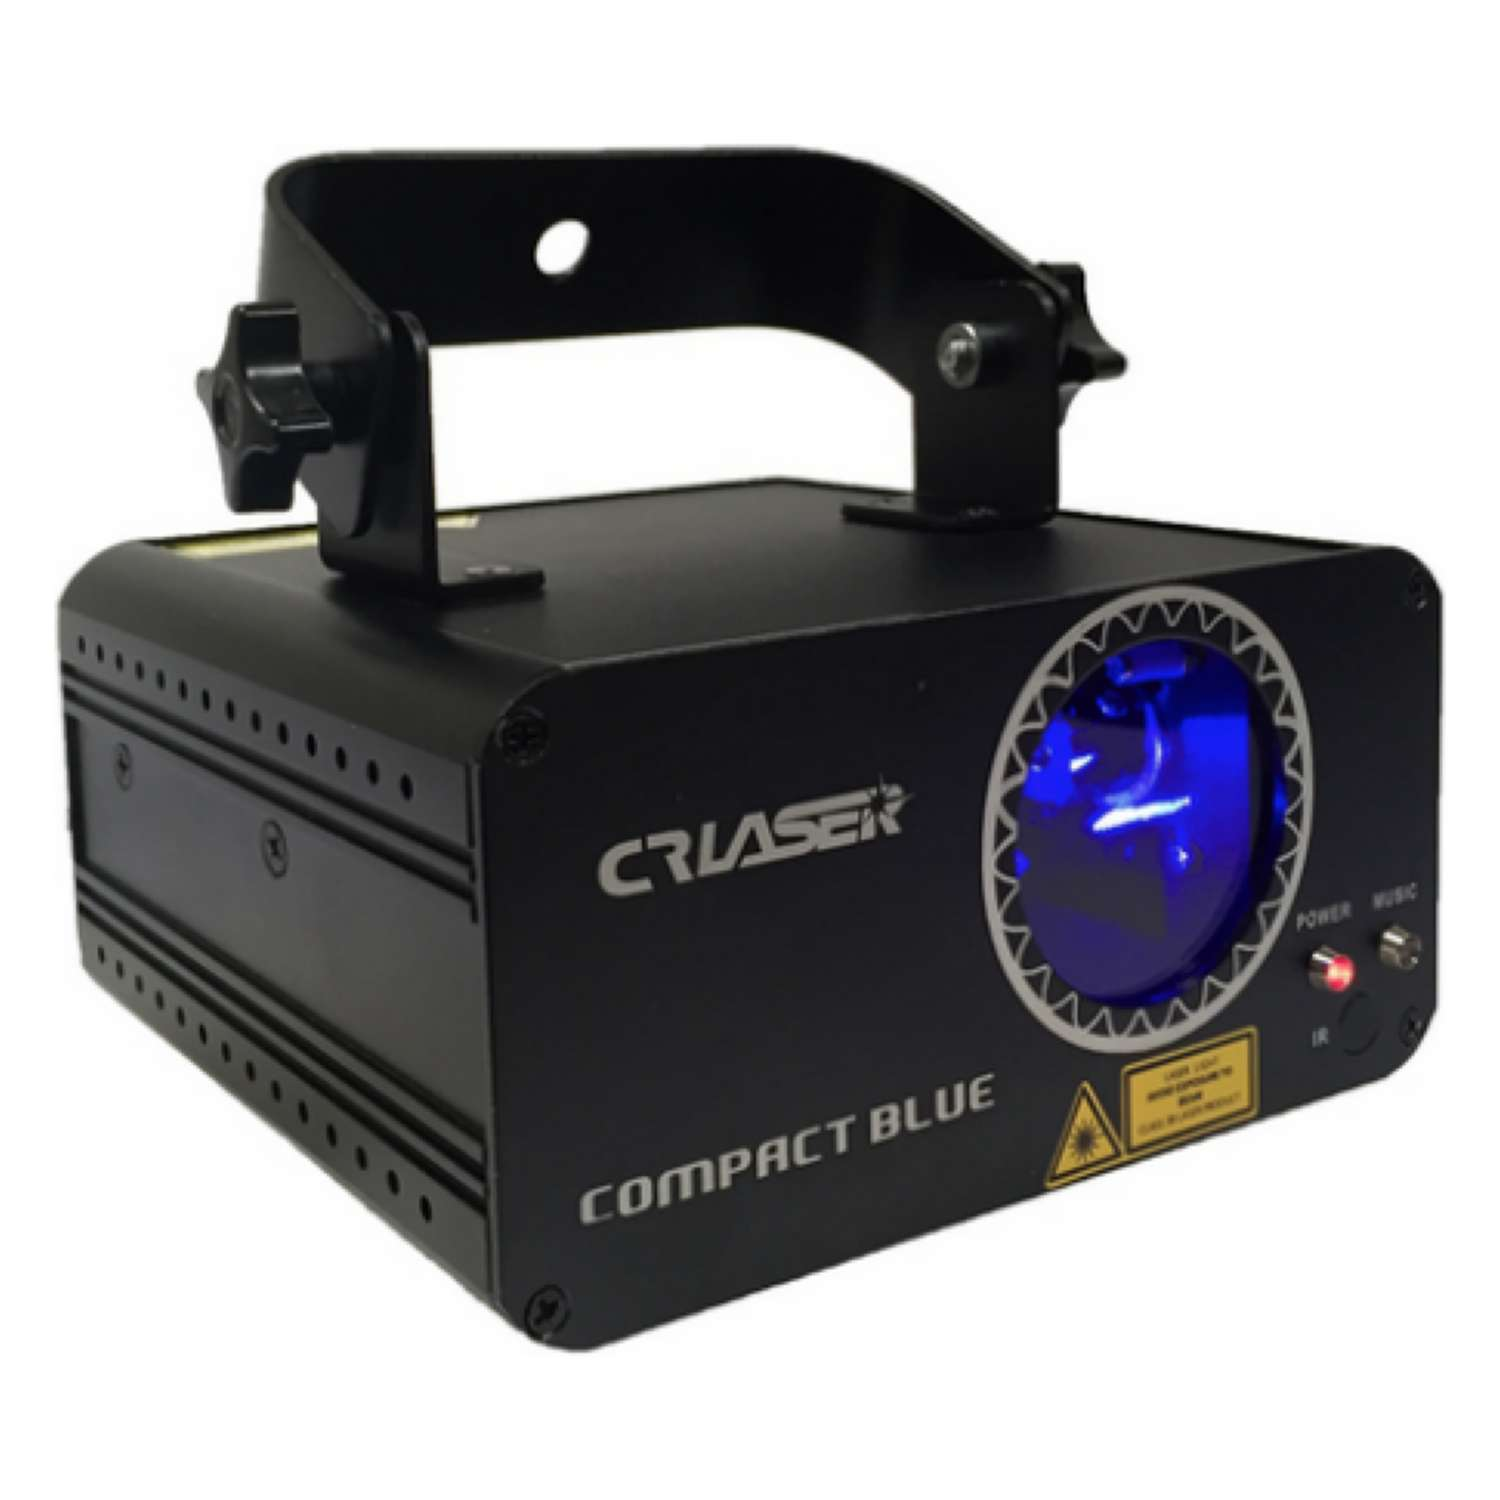 CR Laser Compact Blue 500mW Blue Laser With Remote 1